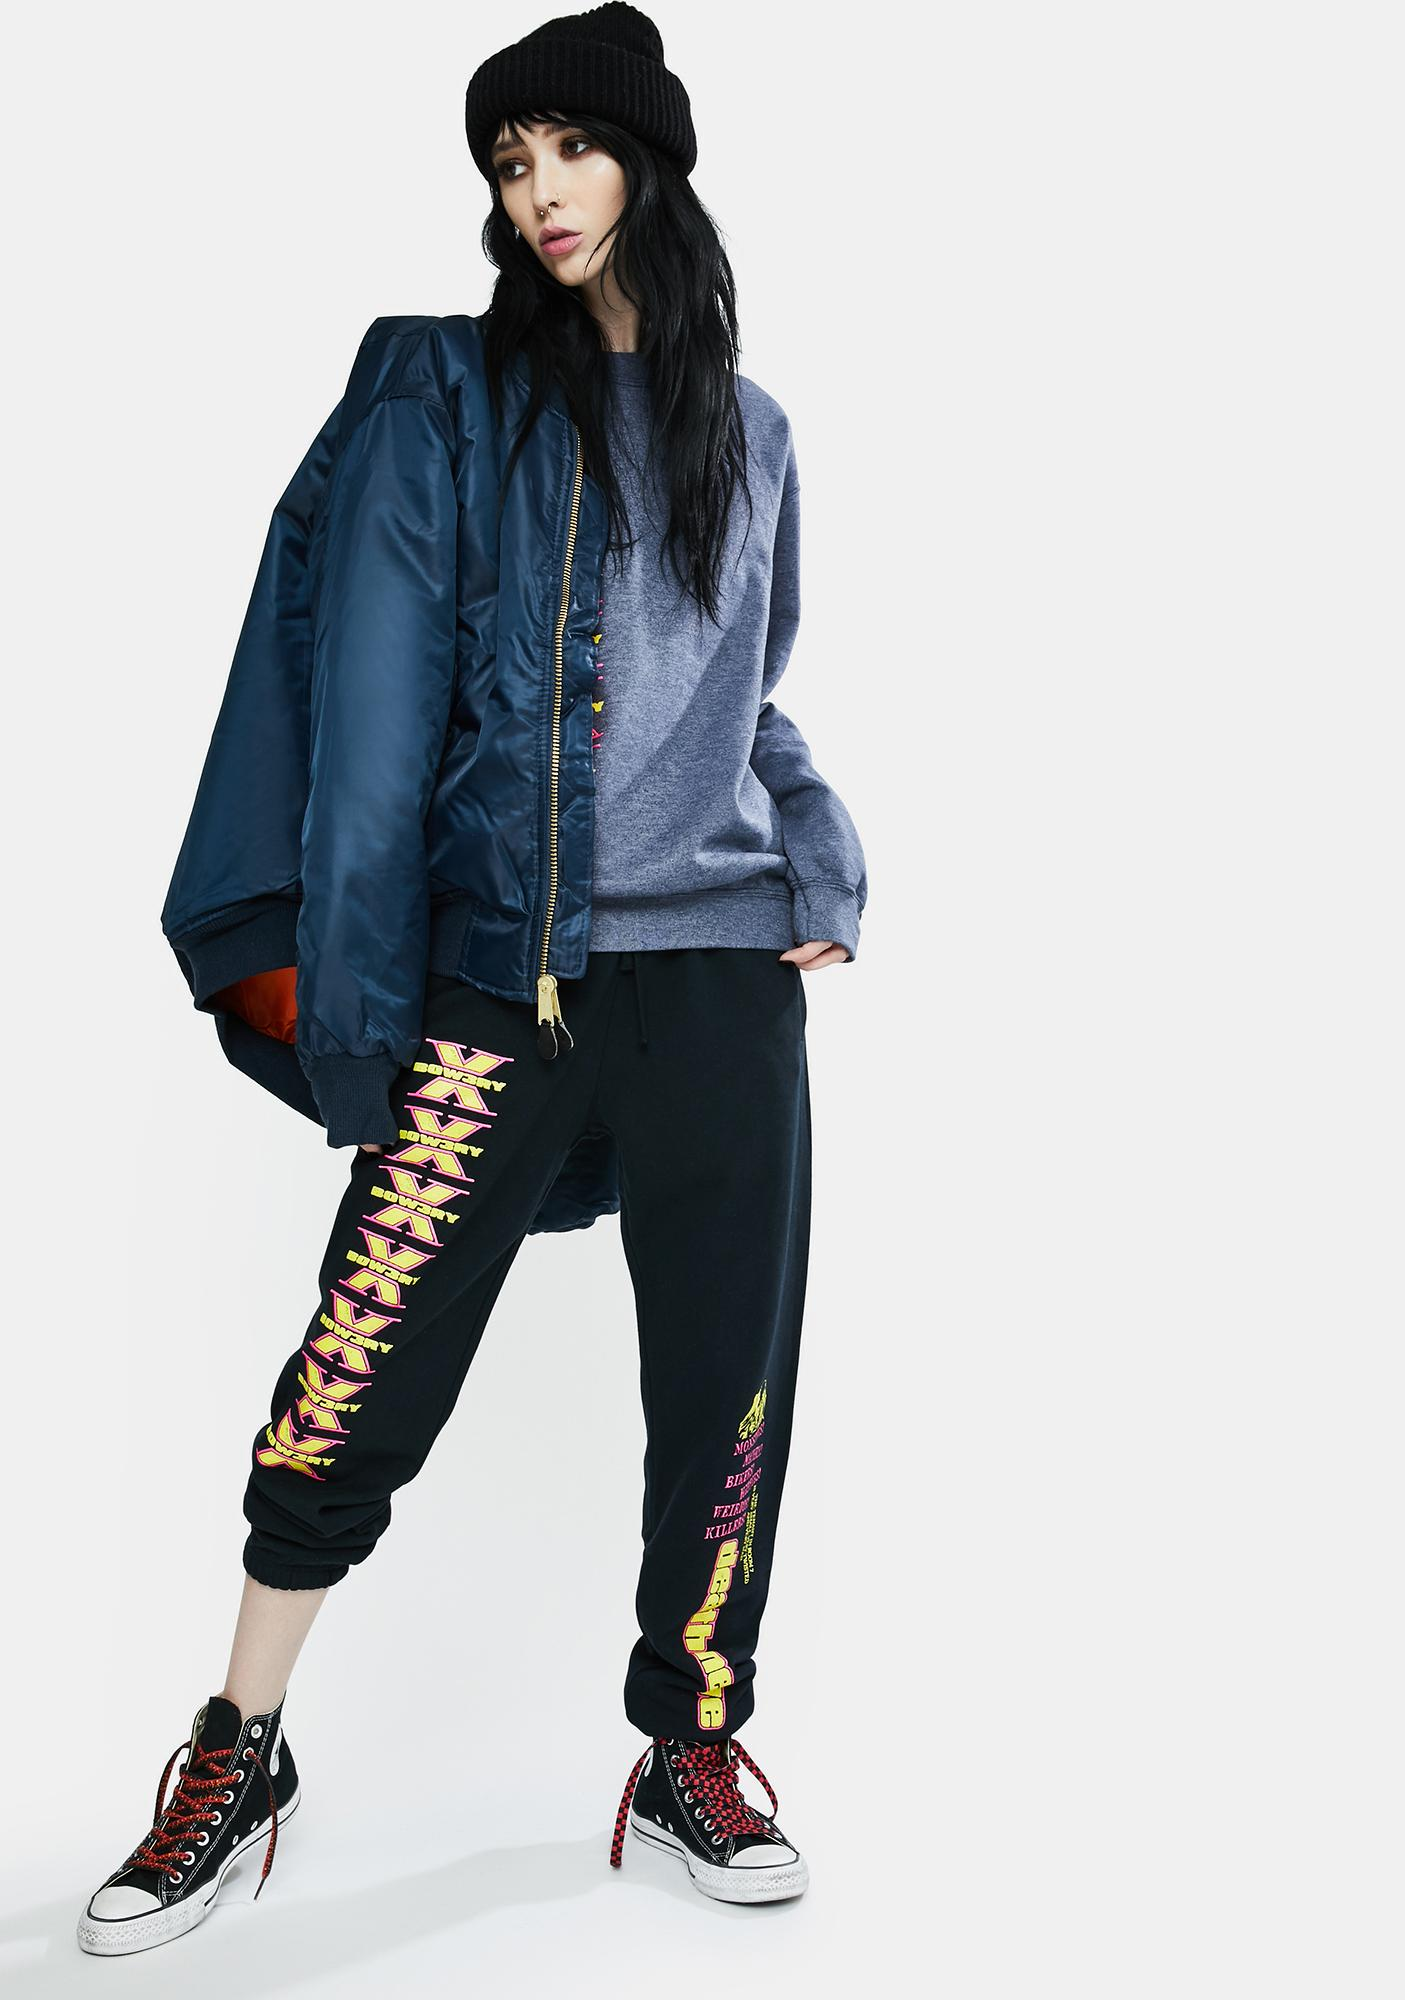 BOW3RY Death Nerves Graphic Sweatpants